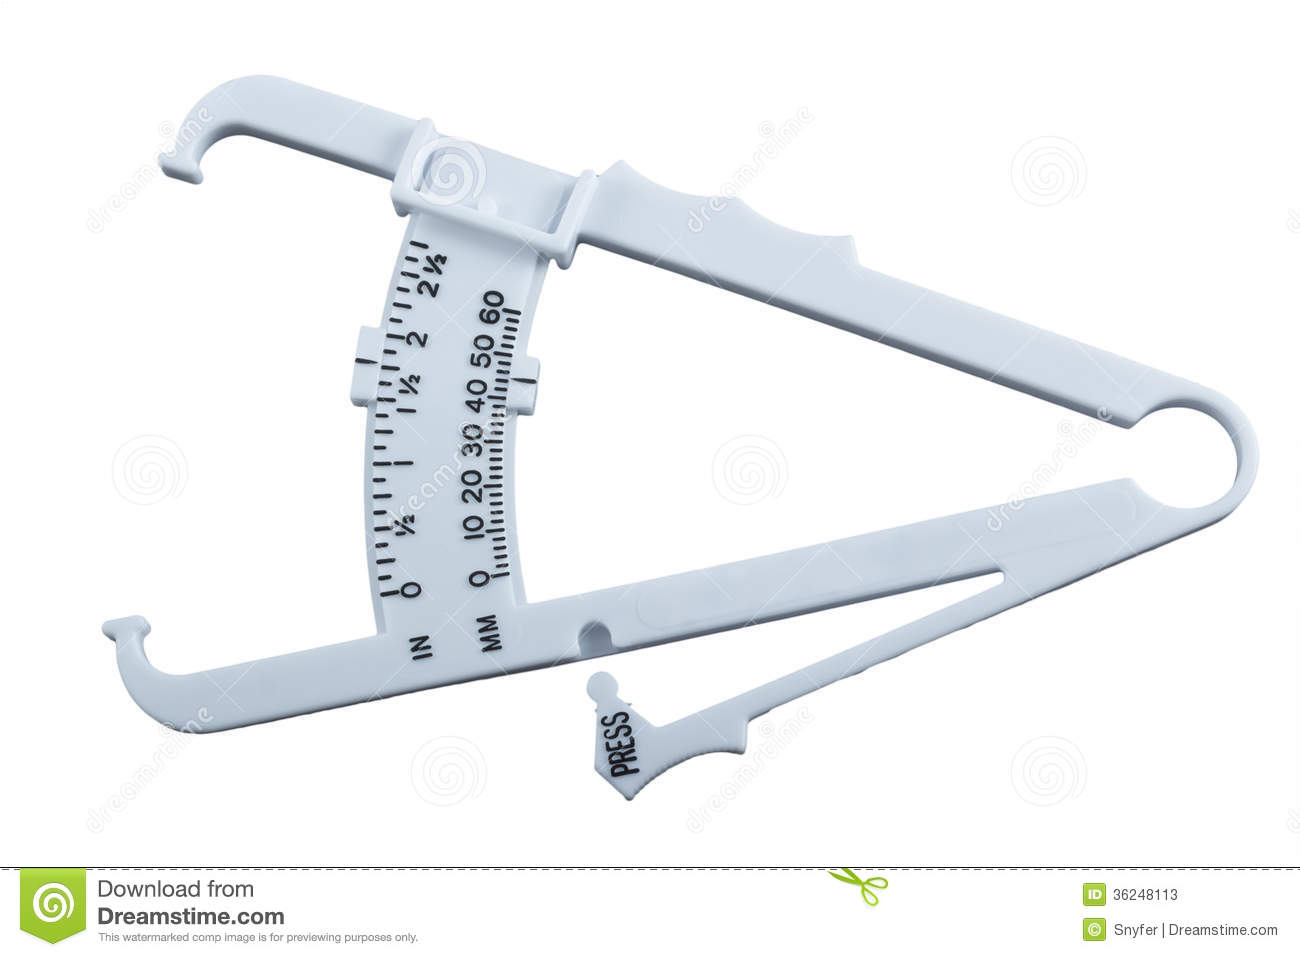 Body Fat Measuring Calipers Isolated On White Background